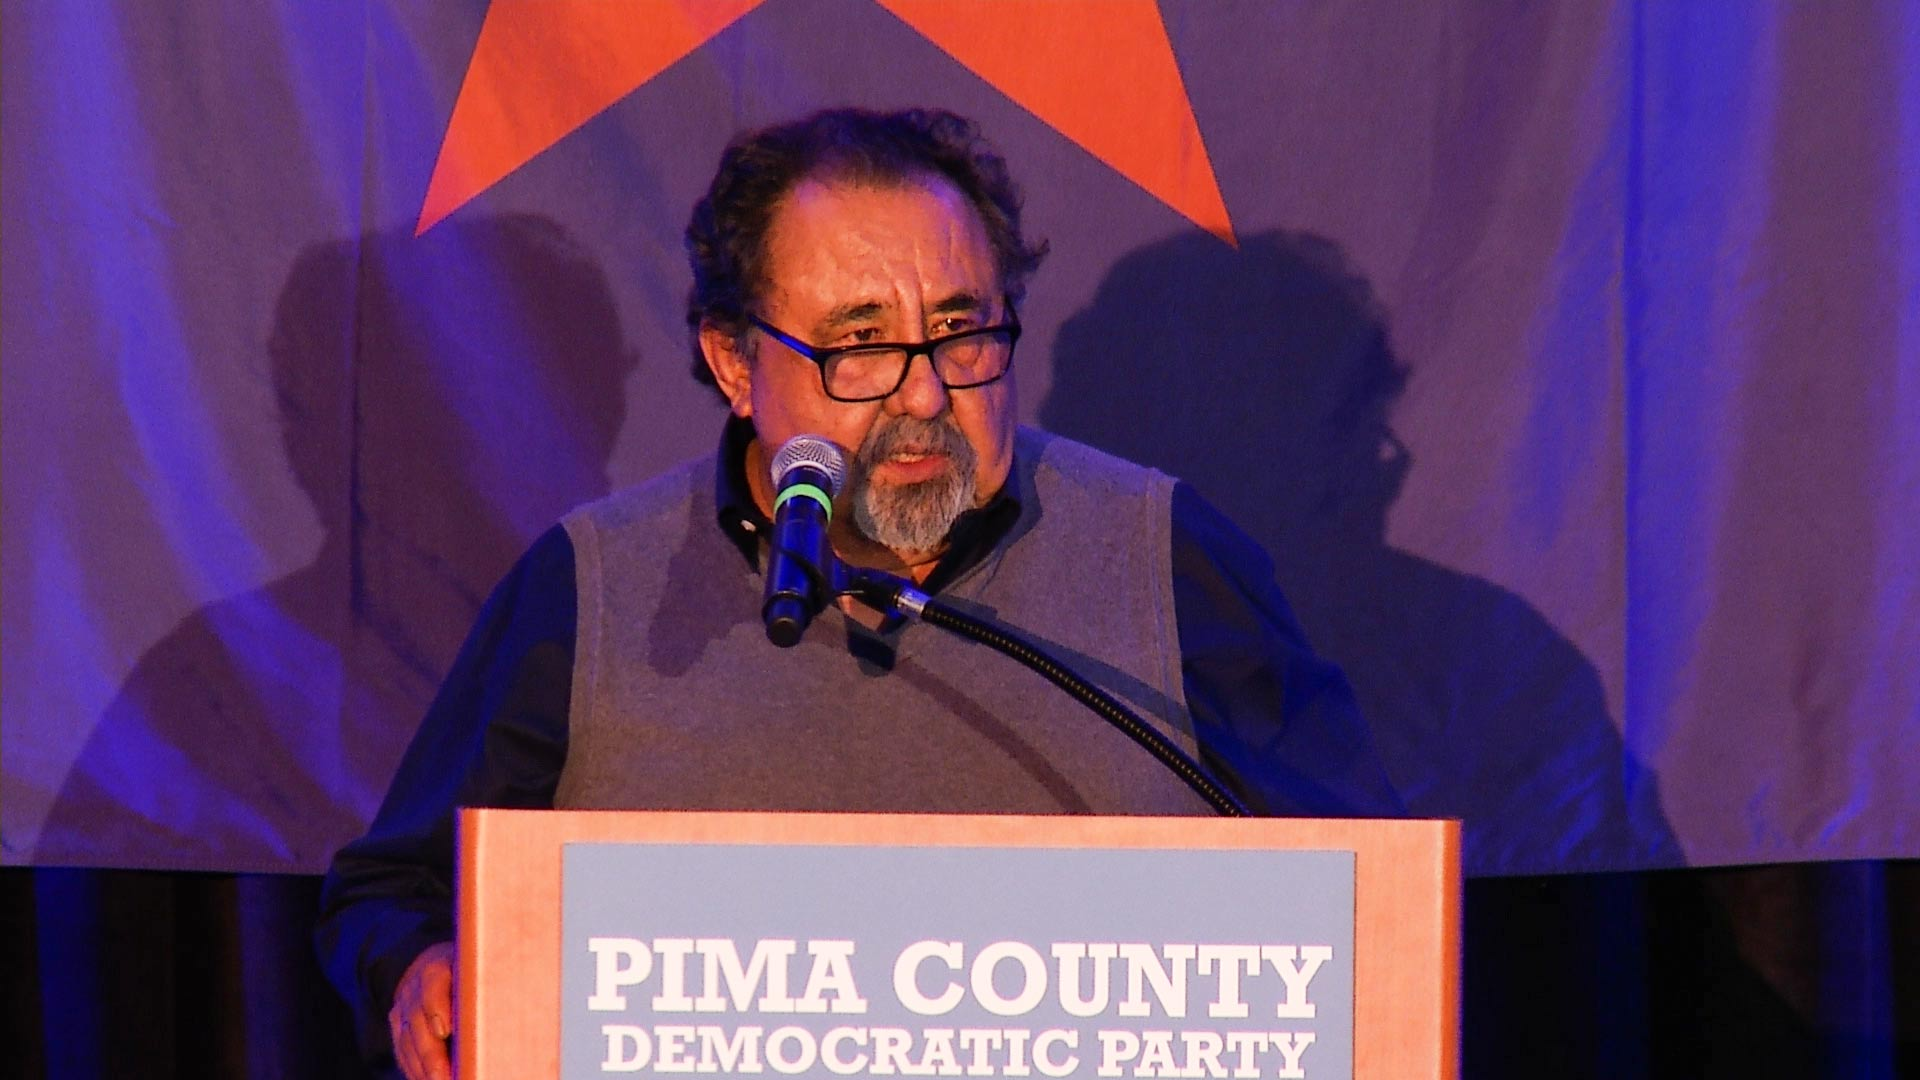 grijalva election podium